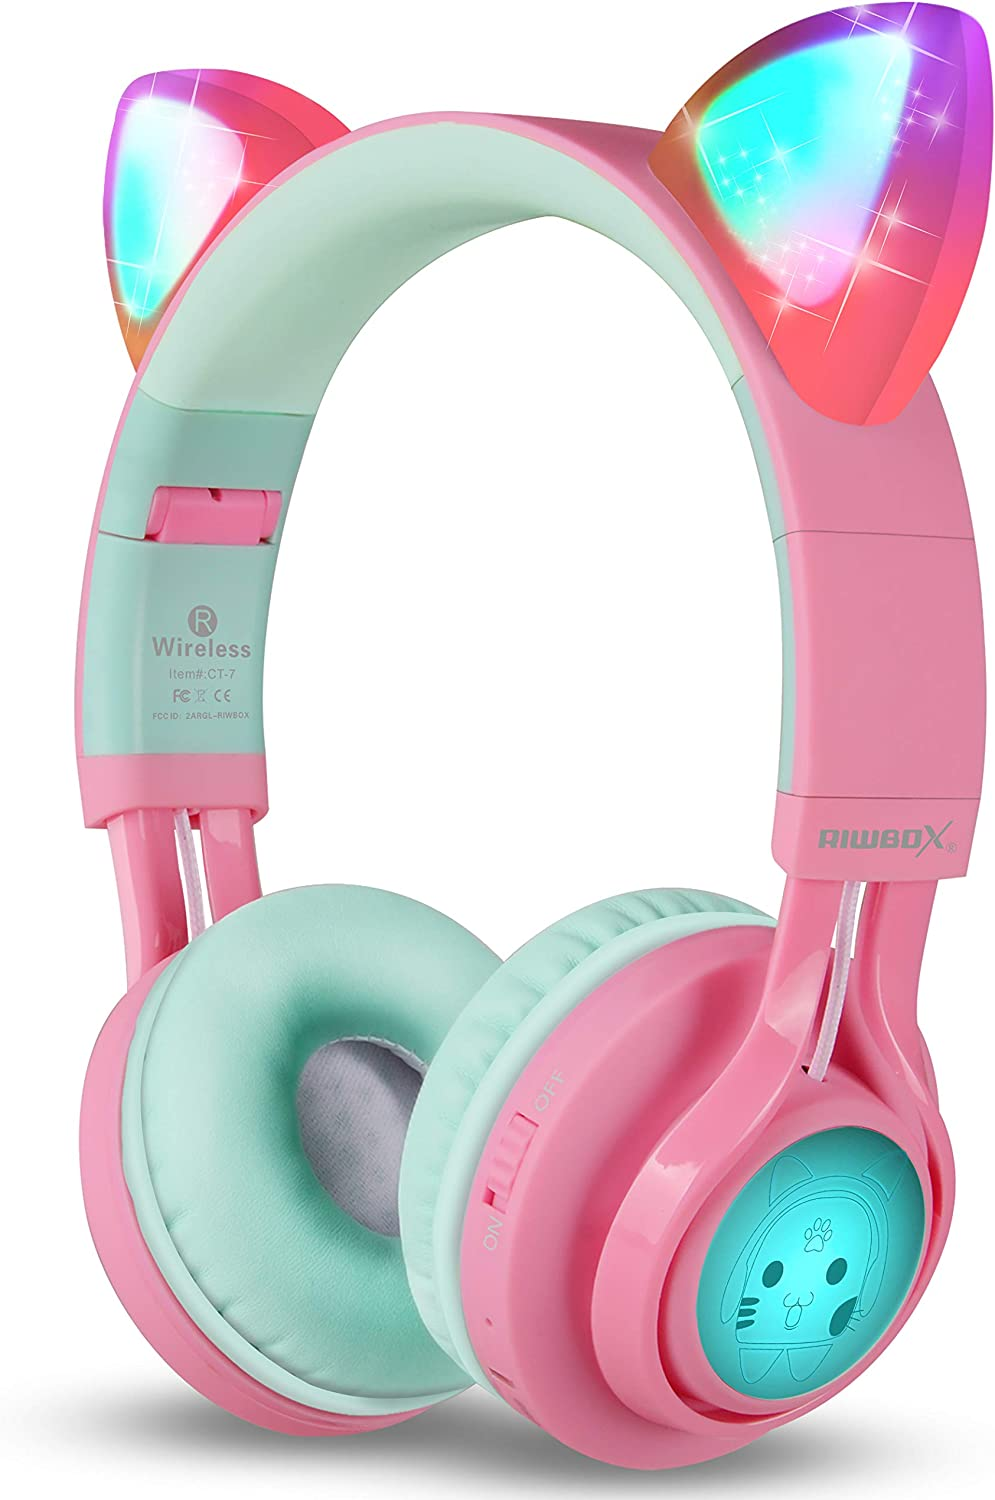 Riwbox Bluetooth Headphones  Riwbox CT-7 Cat Ear LED Light Up Wireless Foldable Headphones Over Ear with Microphone and Volume Control for iPhone iPad Smartphones Laptop PC TV  Pink Green